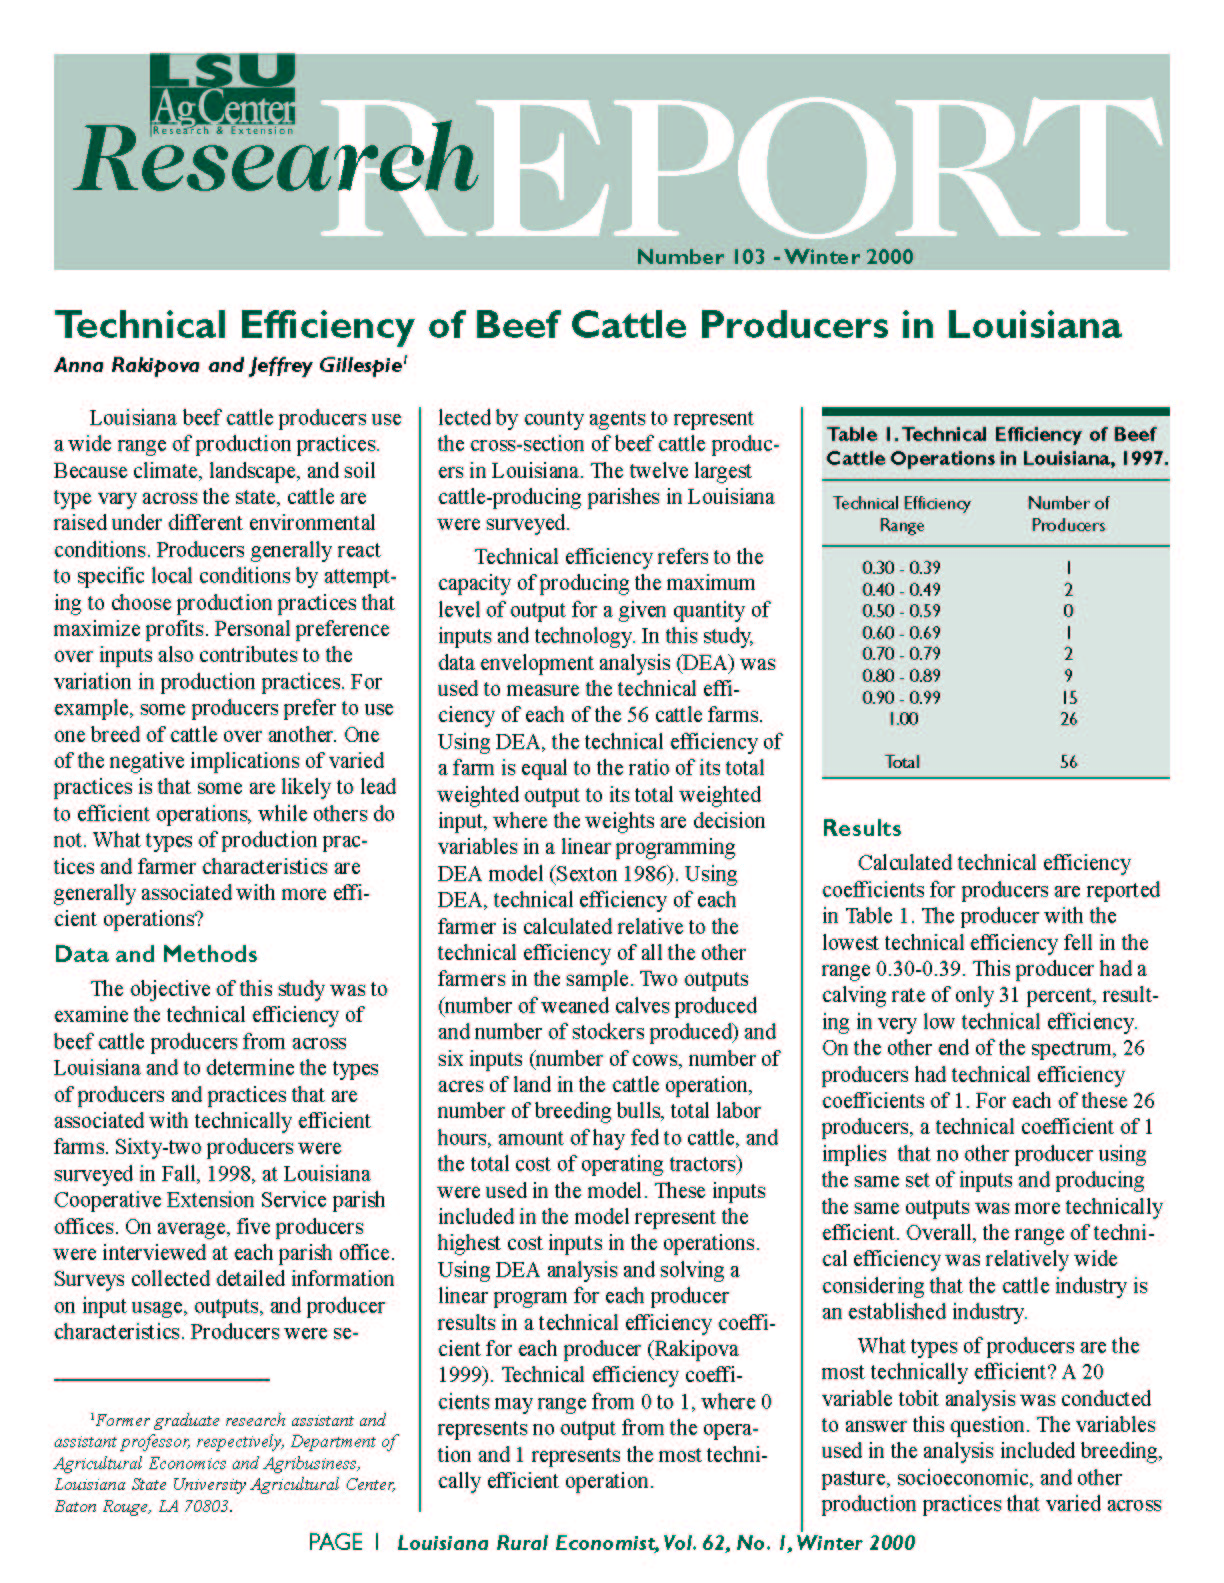 Technical Efficiency of Beef Cattle Producers in Louisiana (Winter 2000)